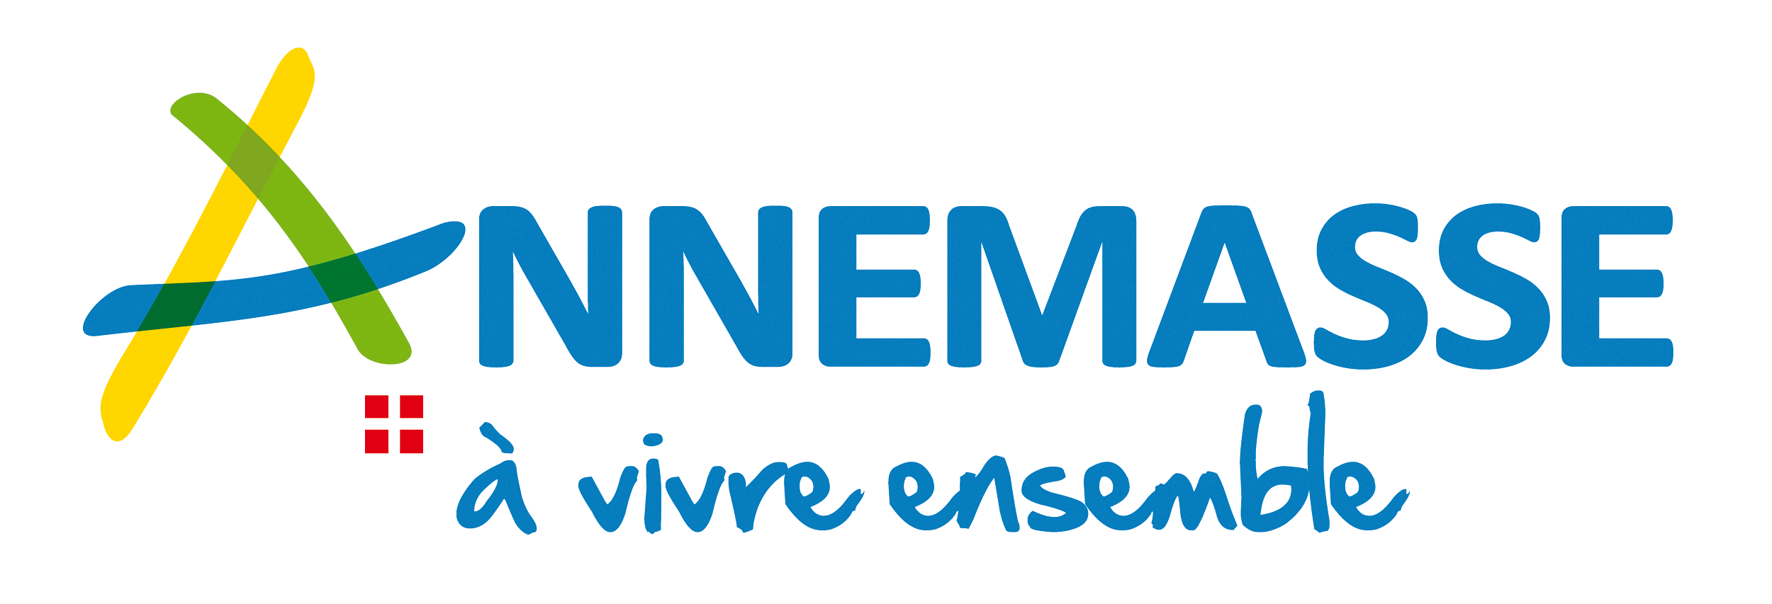 logo annemasse rectangle